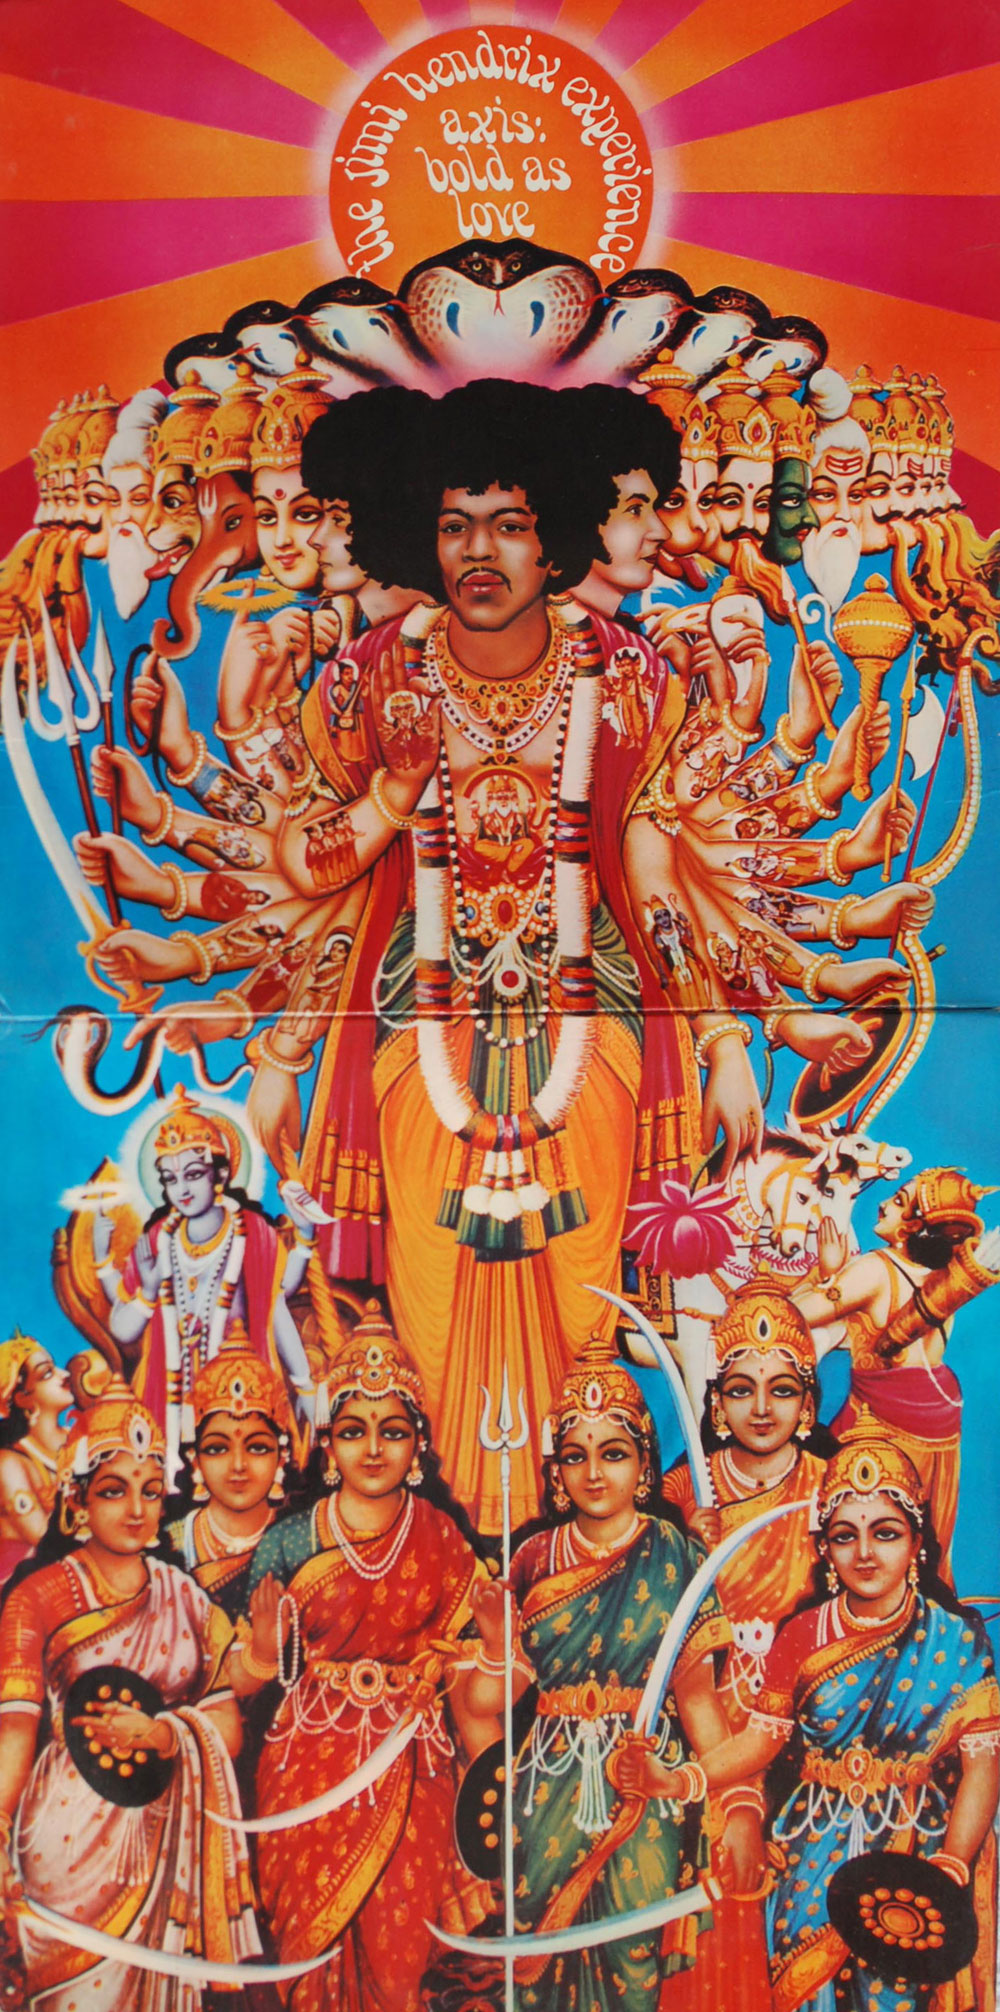 """The Home Ministry Has Banned The Jimi Hendrix 1967 Album """"Axis: Bold As Love"""" Cover Art That Depicts The Rock Singer As Hindu God Lord Vishnu"""